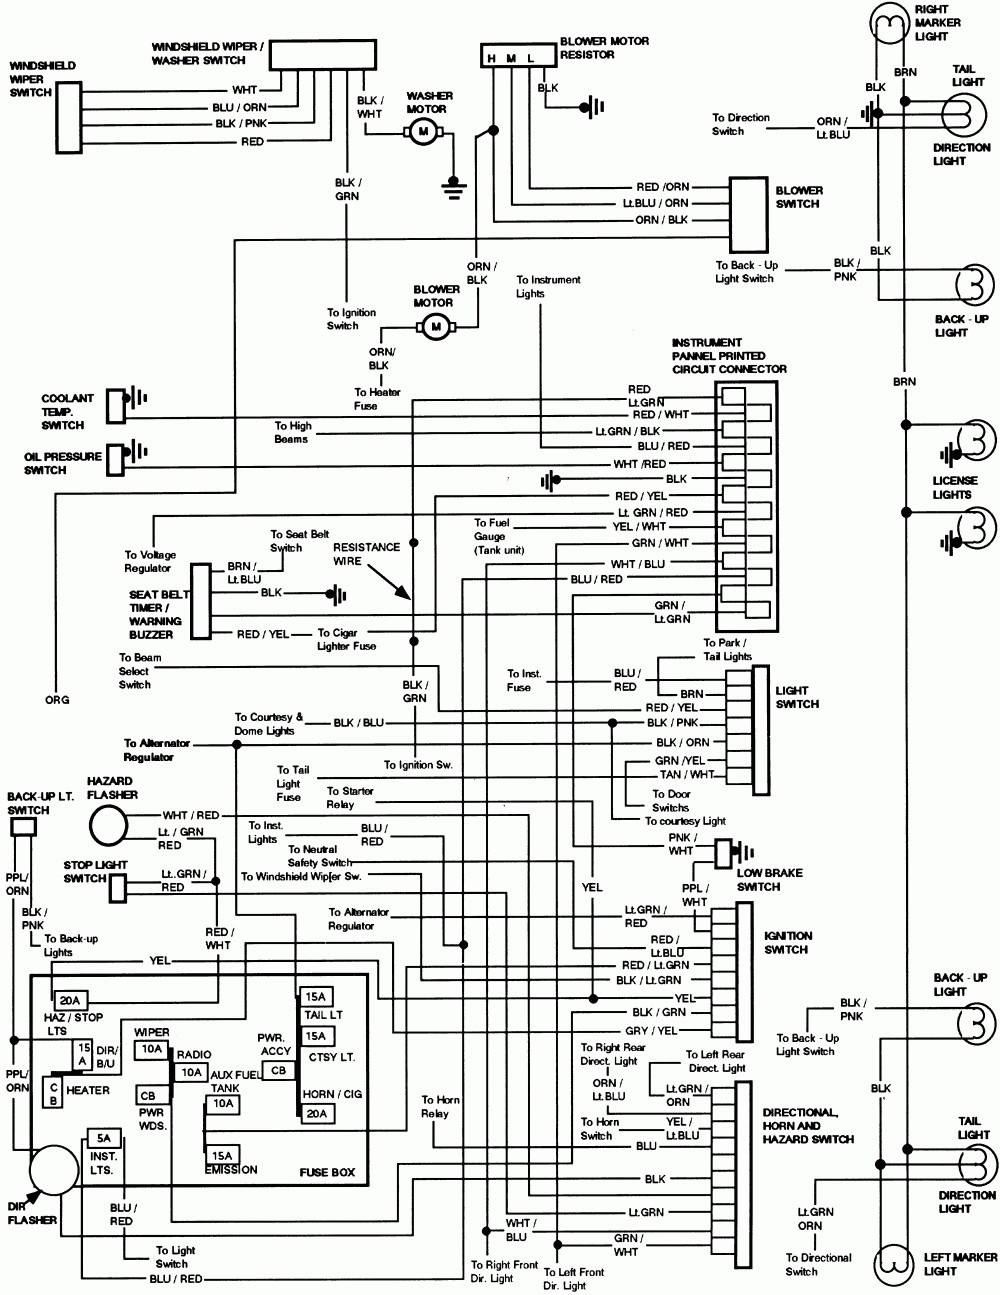 medium resolution of 1994 f 350 engine diagram wiring diagram new 1994 f 350 engine diagram